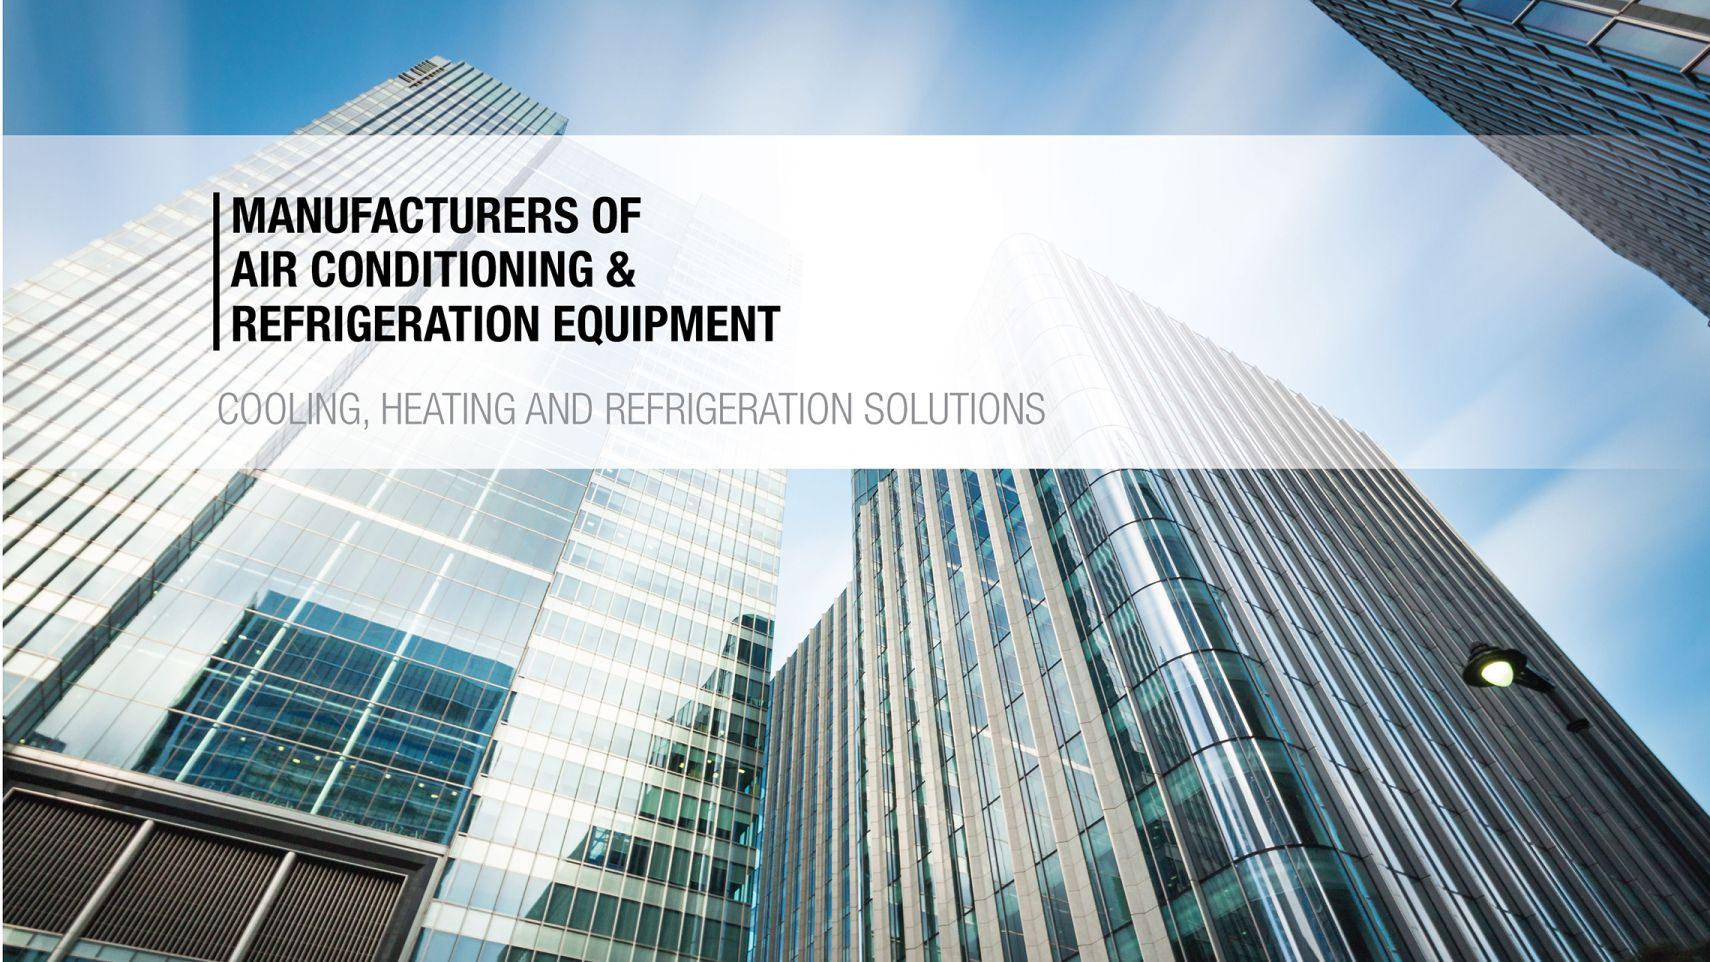 manufacturers of air conditioning and refrigeration equipment